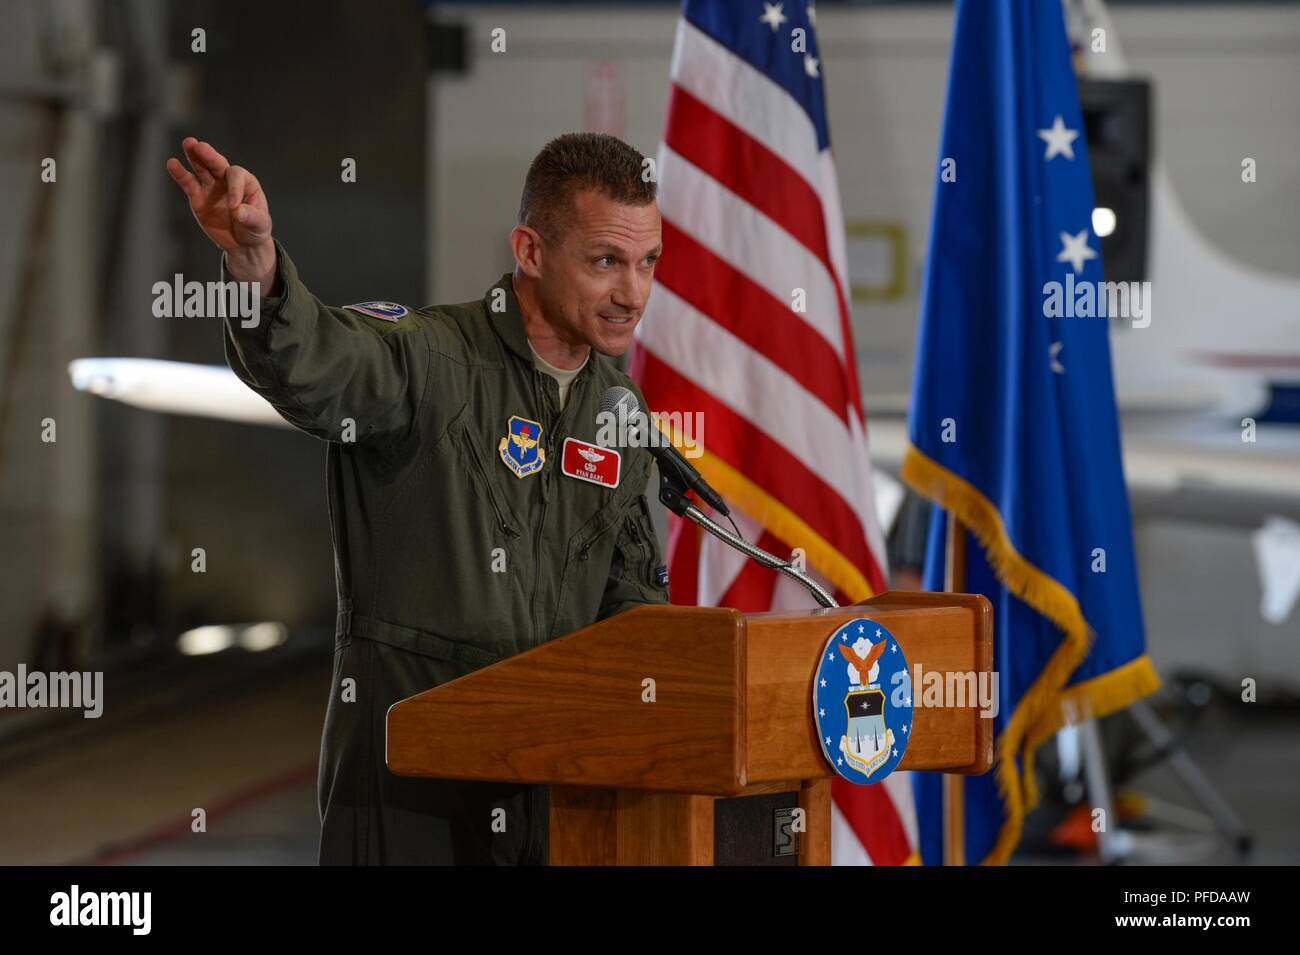 87a21c43eaa U.S. Air Force Academy -- Lt. Col. Ryan Bare, 306th Operations Support  Squadron incoming commander, delivers a speech during the change of command  ceremony ...